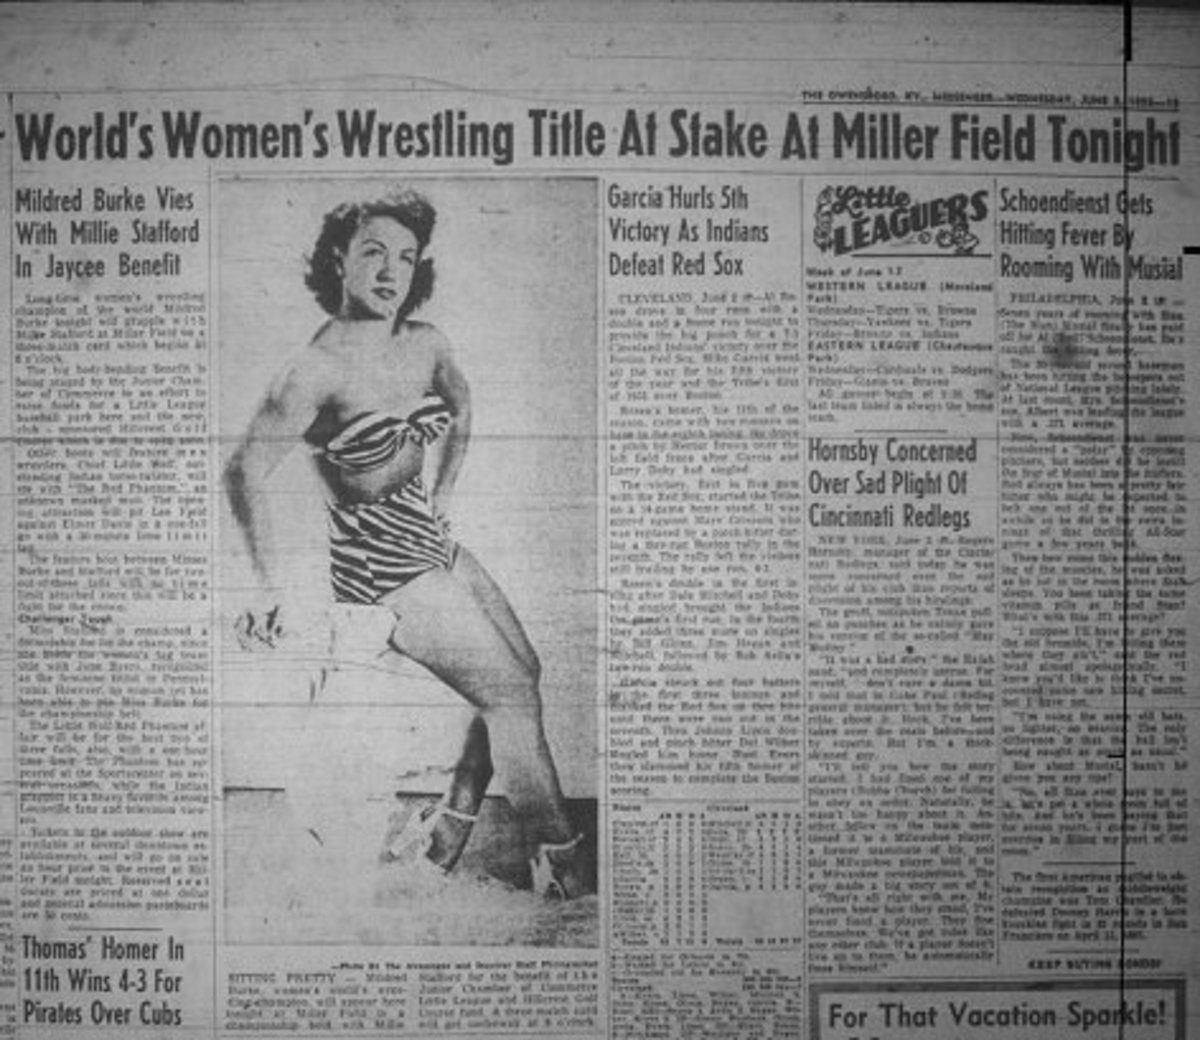 Newspaper article about Mildred Burke wrestling match